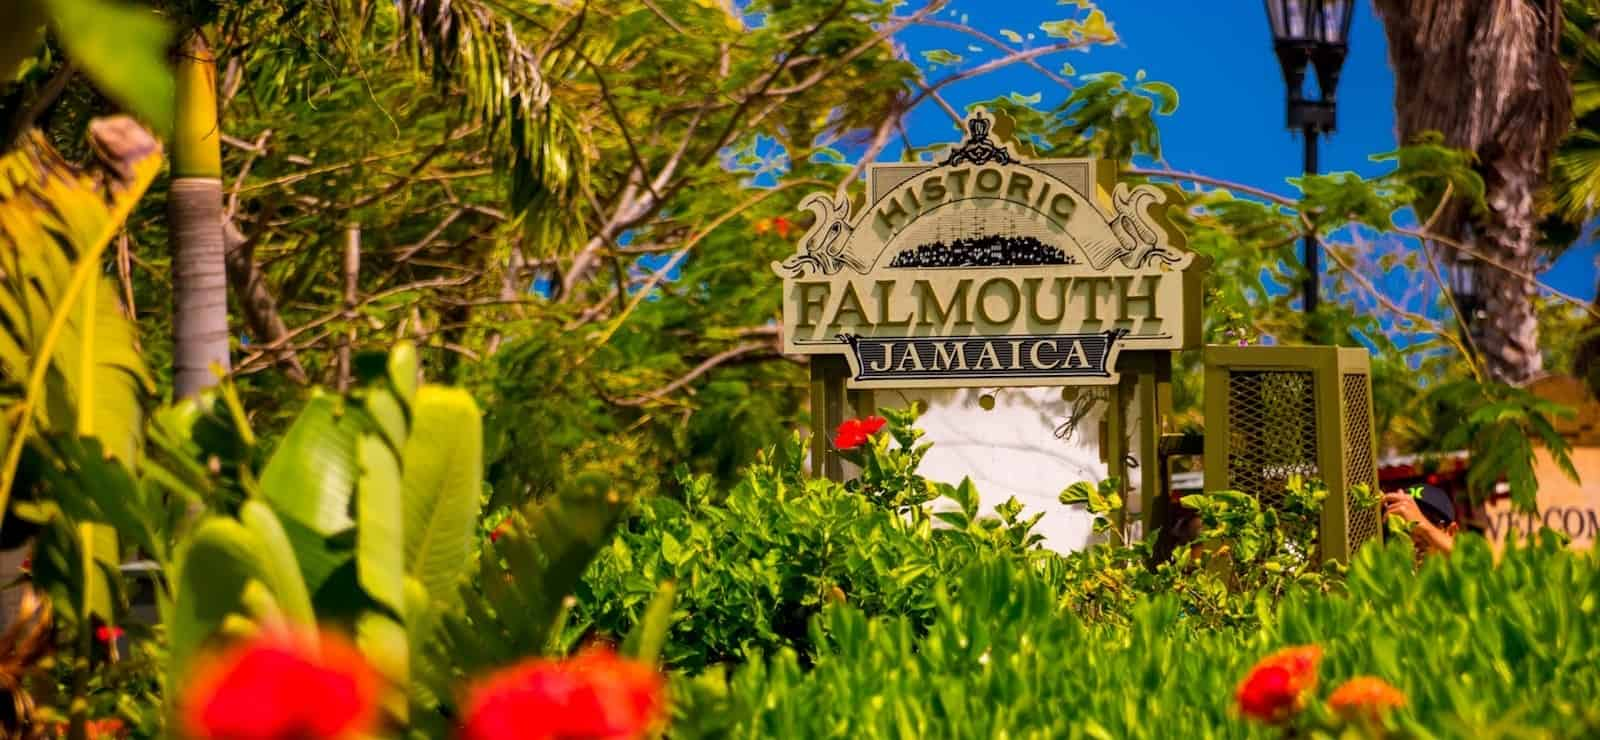 Cruising To Falmouth Jamaica Read These 5 Tips First